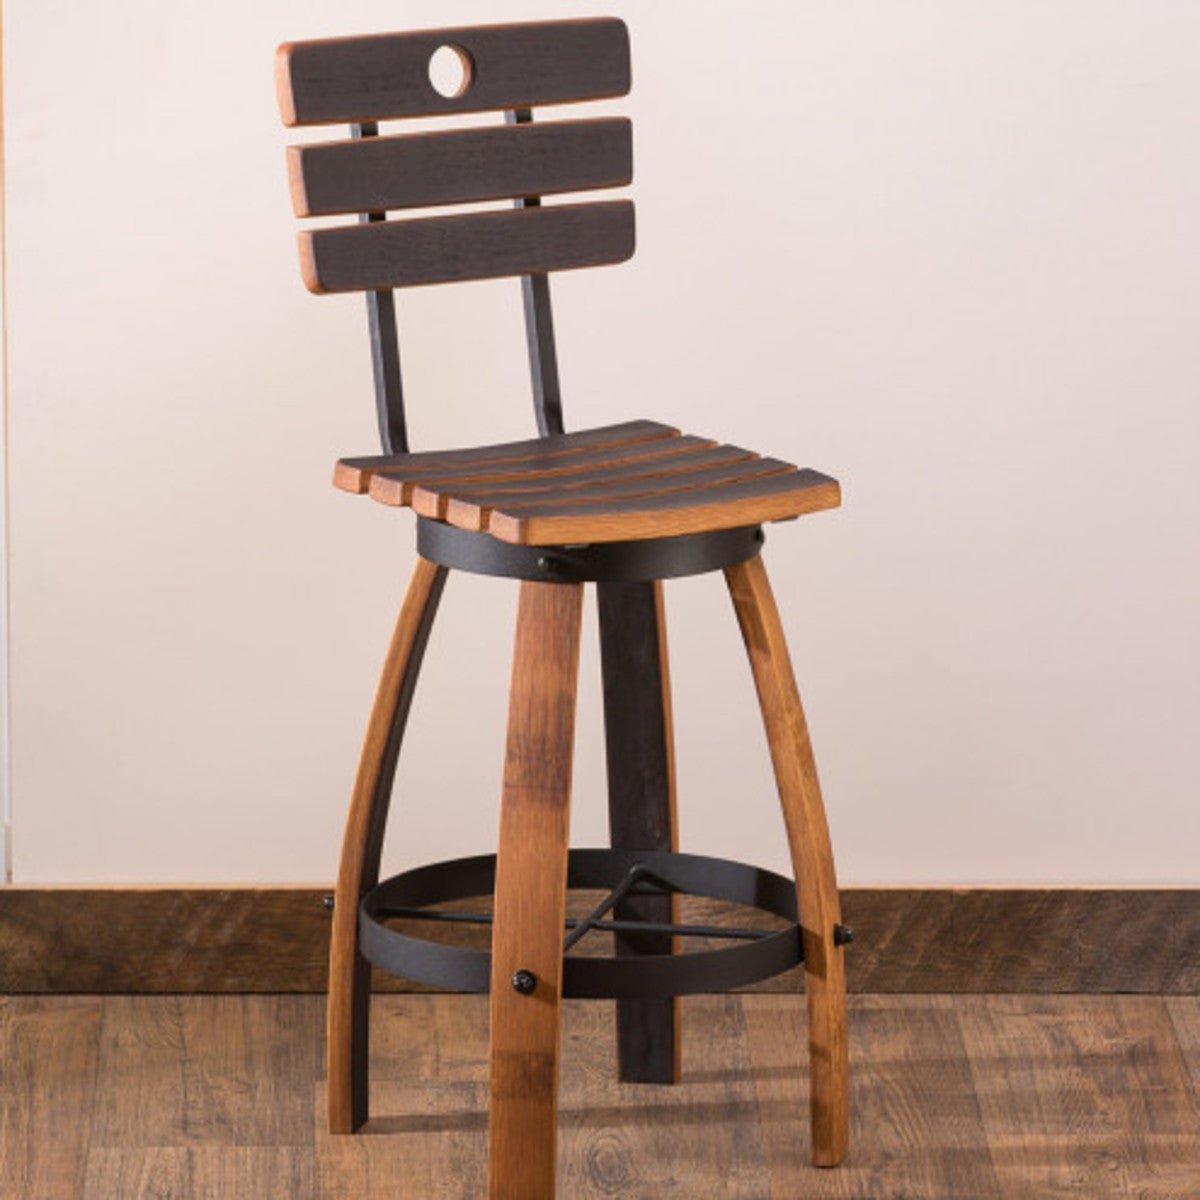 Astounding Repurposed Wine Barrel Backed Stool Vivaterra Caraccident5 Cool Chair Designs And Ideas Caraccident5Info